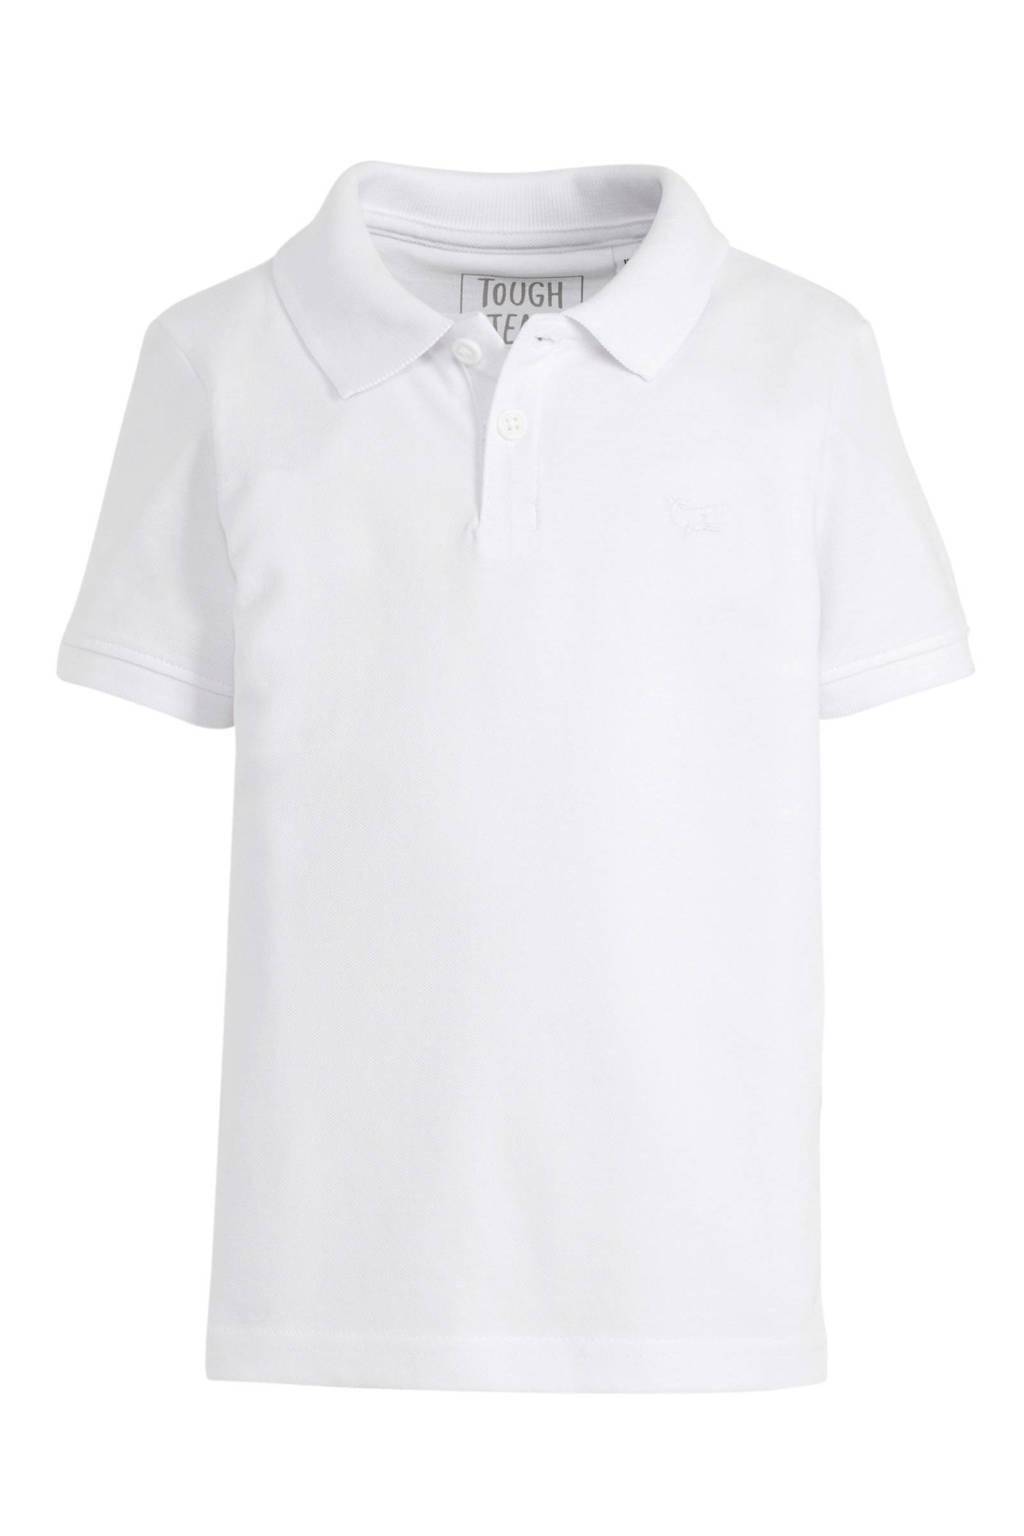 C&A Palomino polo wit, Wit